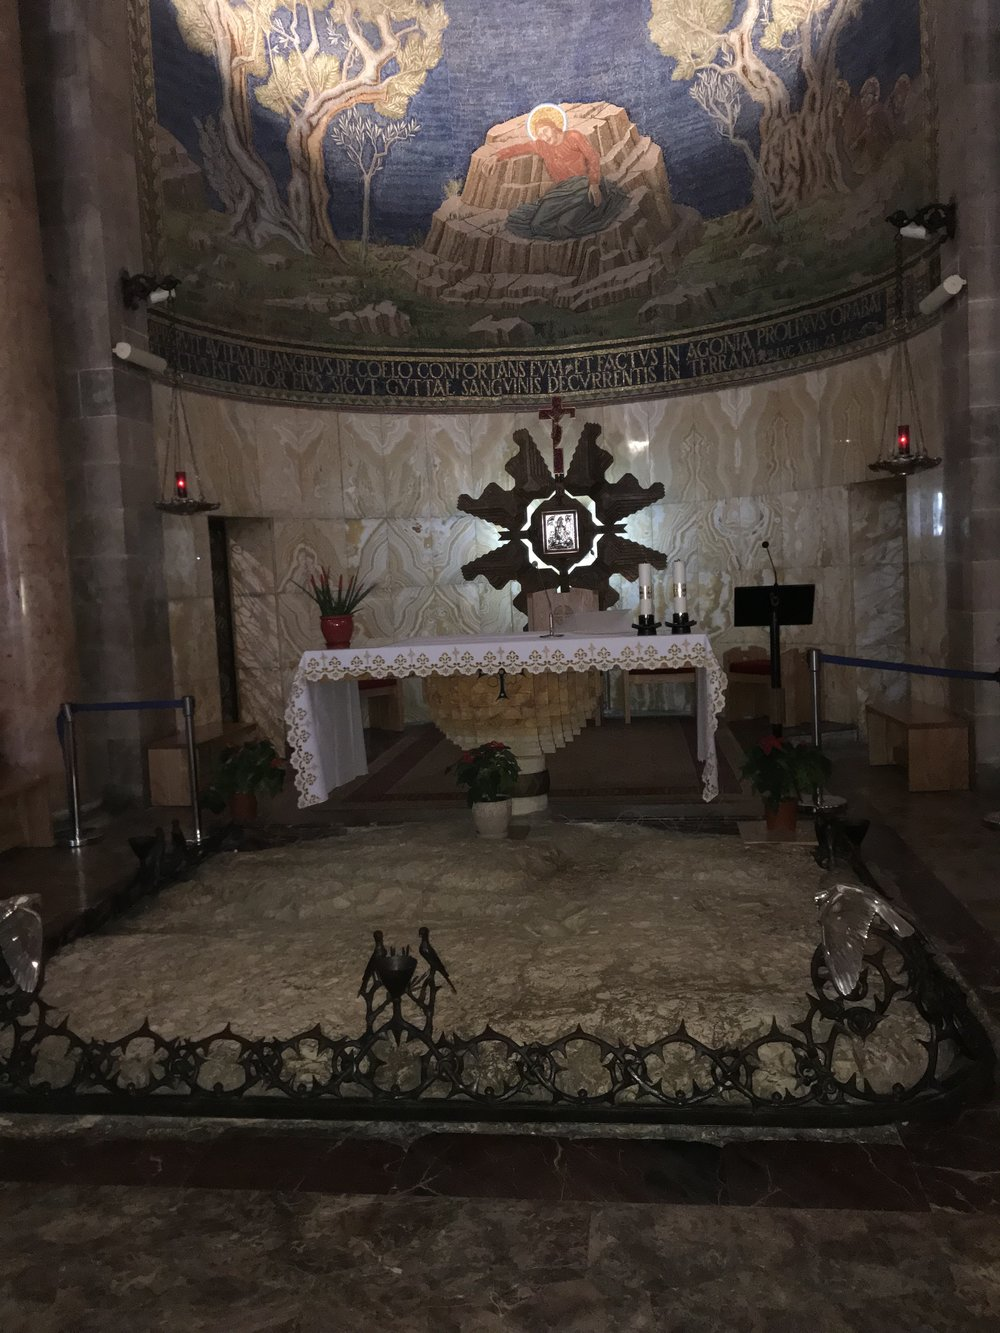 The stone slab where Jesus prayed in the Church of Gethsamane